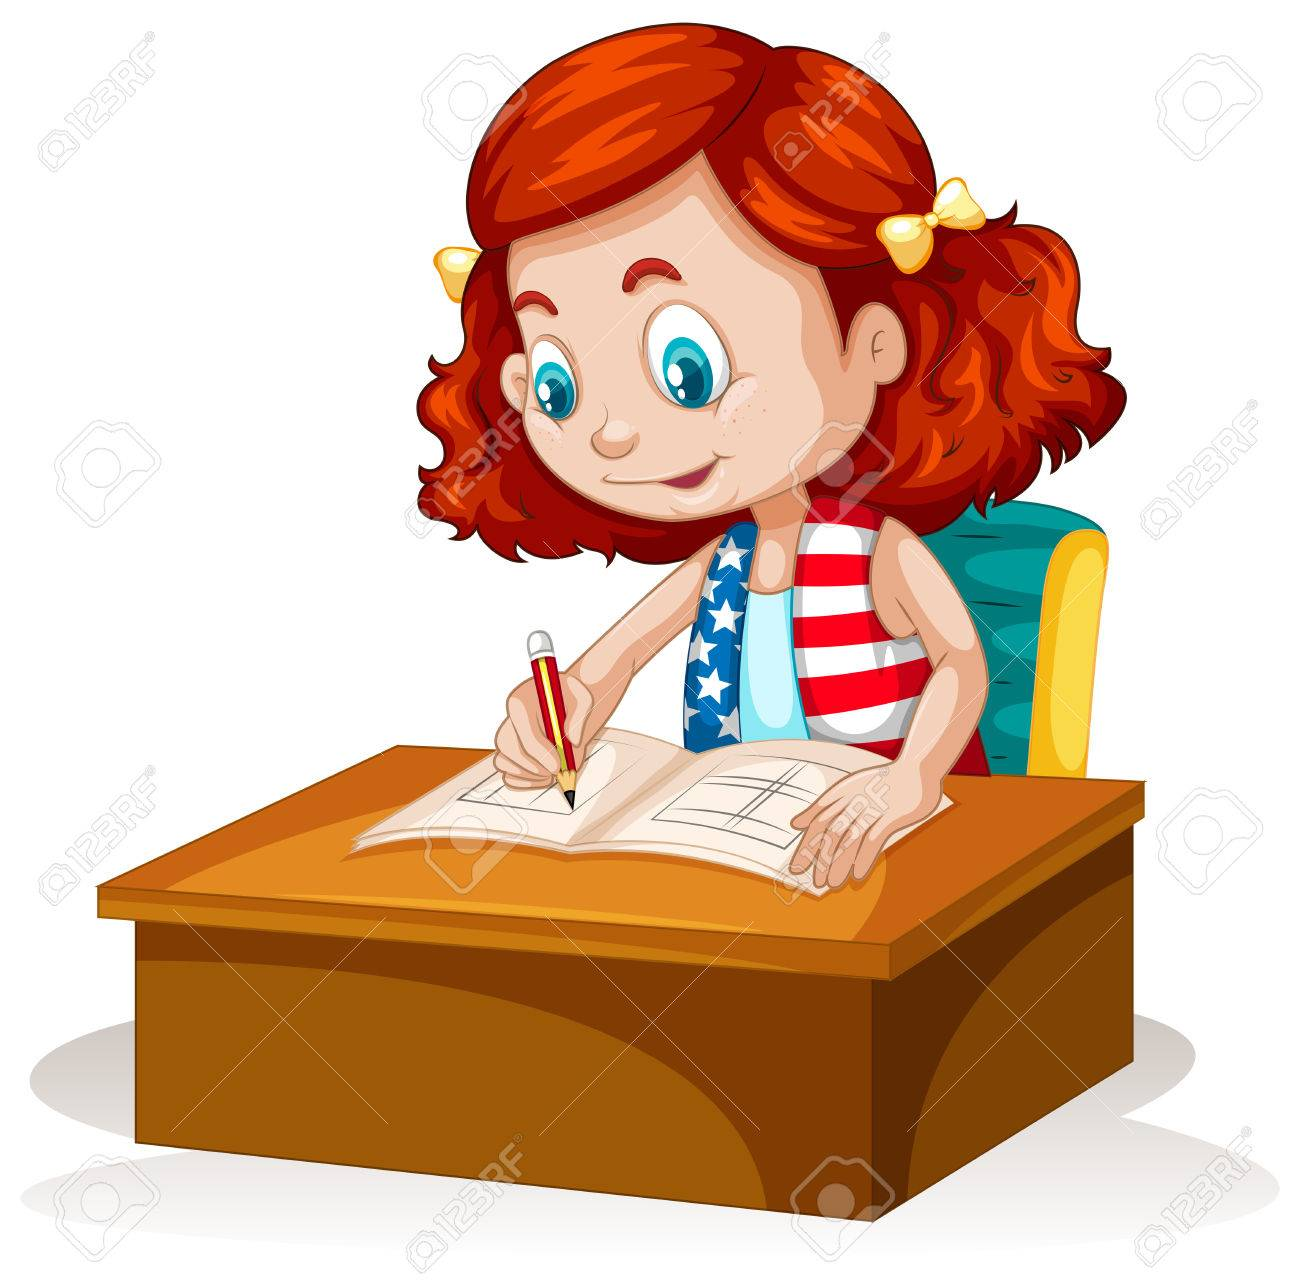 little girl writing on the table illustration royalty free cliparts rh 123rf com  boy and girl writing clipart